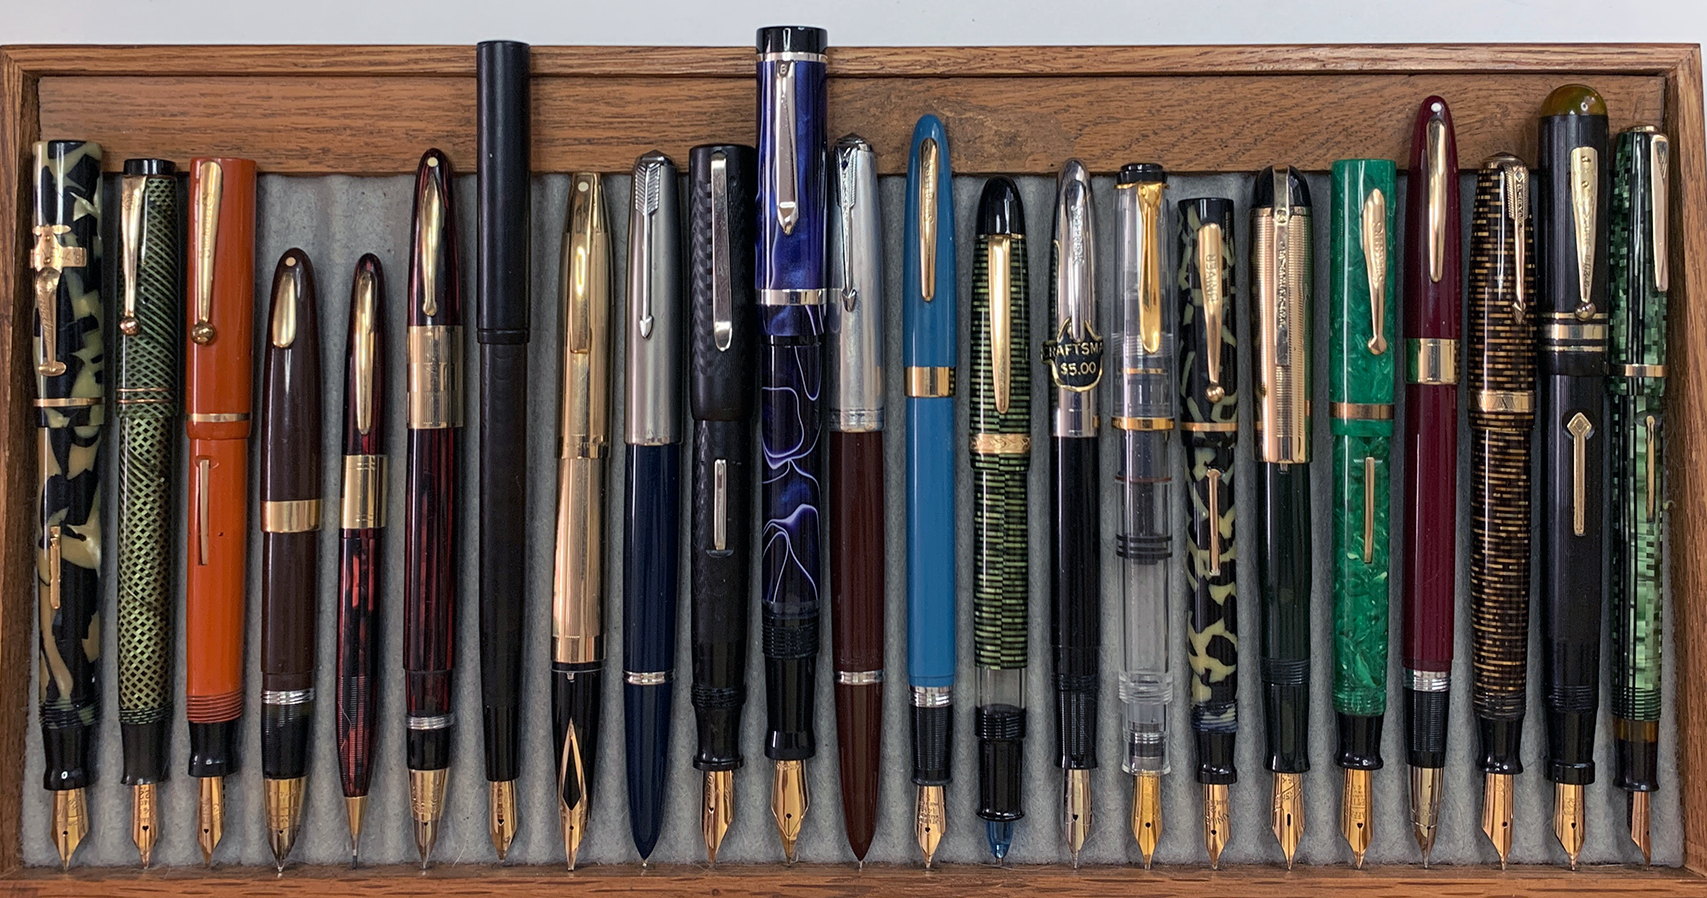 Tray of pens for sale